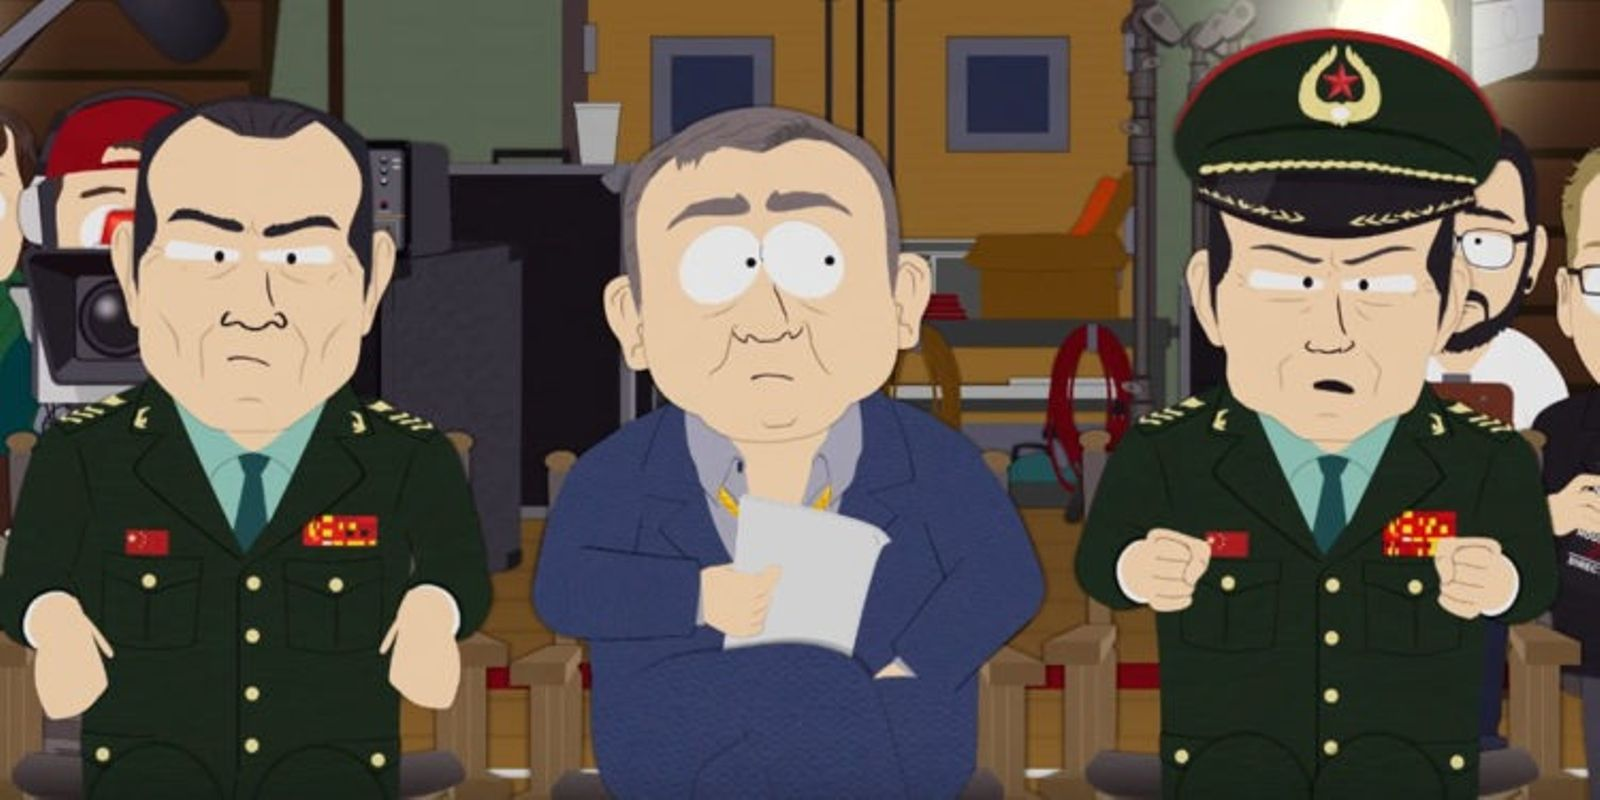 South Park episode 'Band in China' gets South Park banned in China